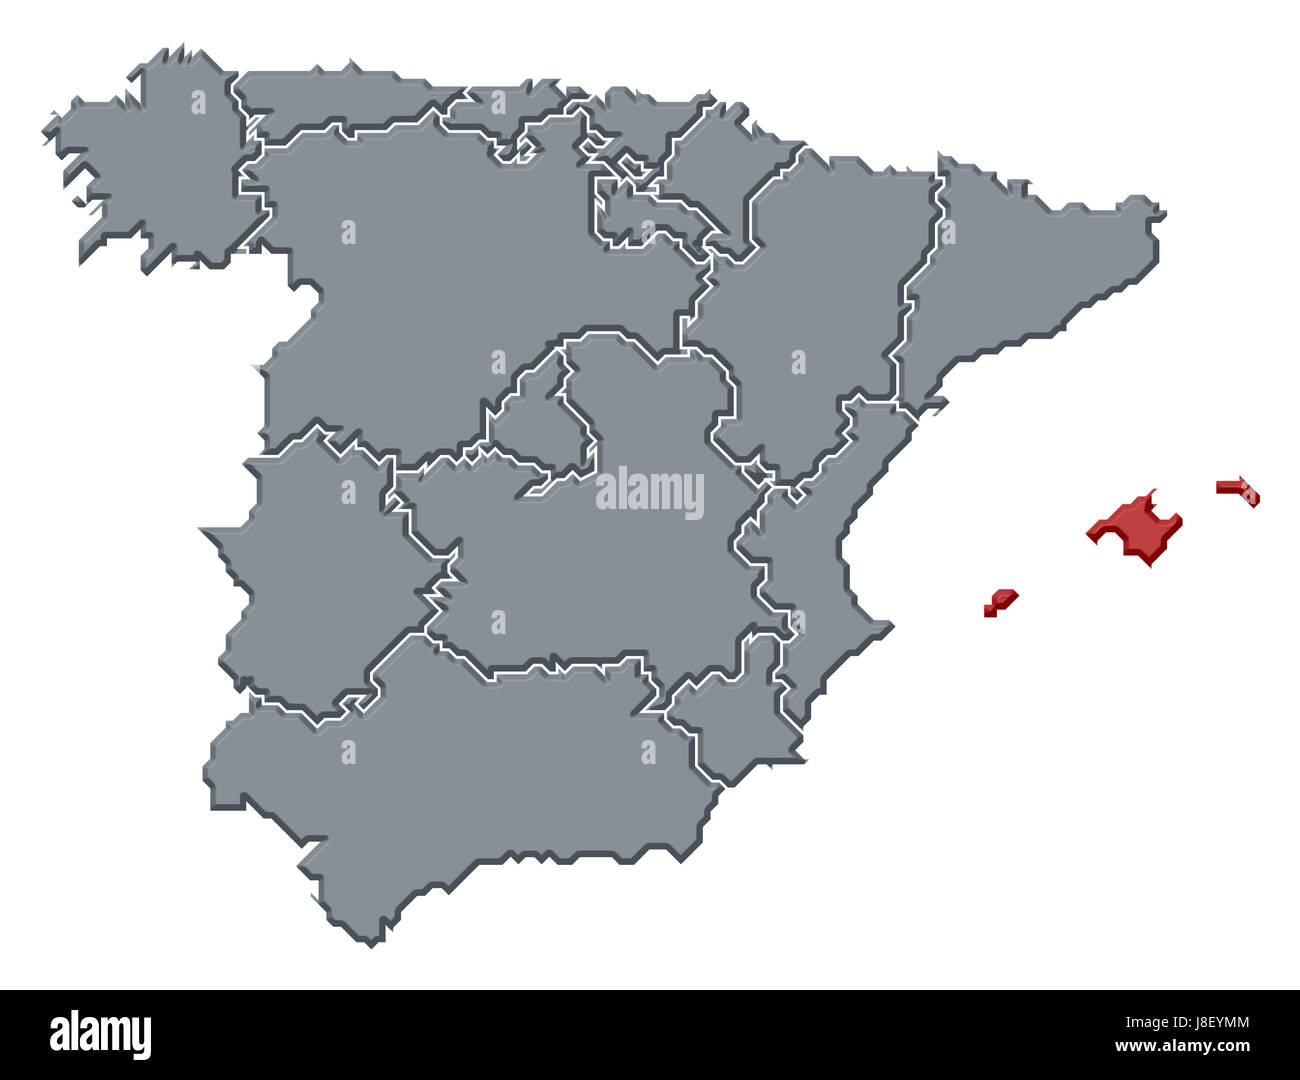 Map Of The World Spain.Spain Map Stock Photos Spain Map Stock Images Alamy